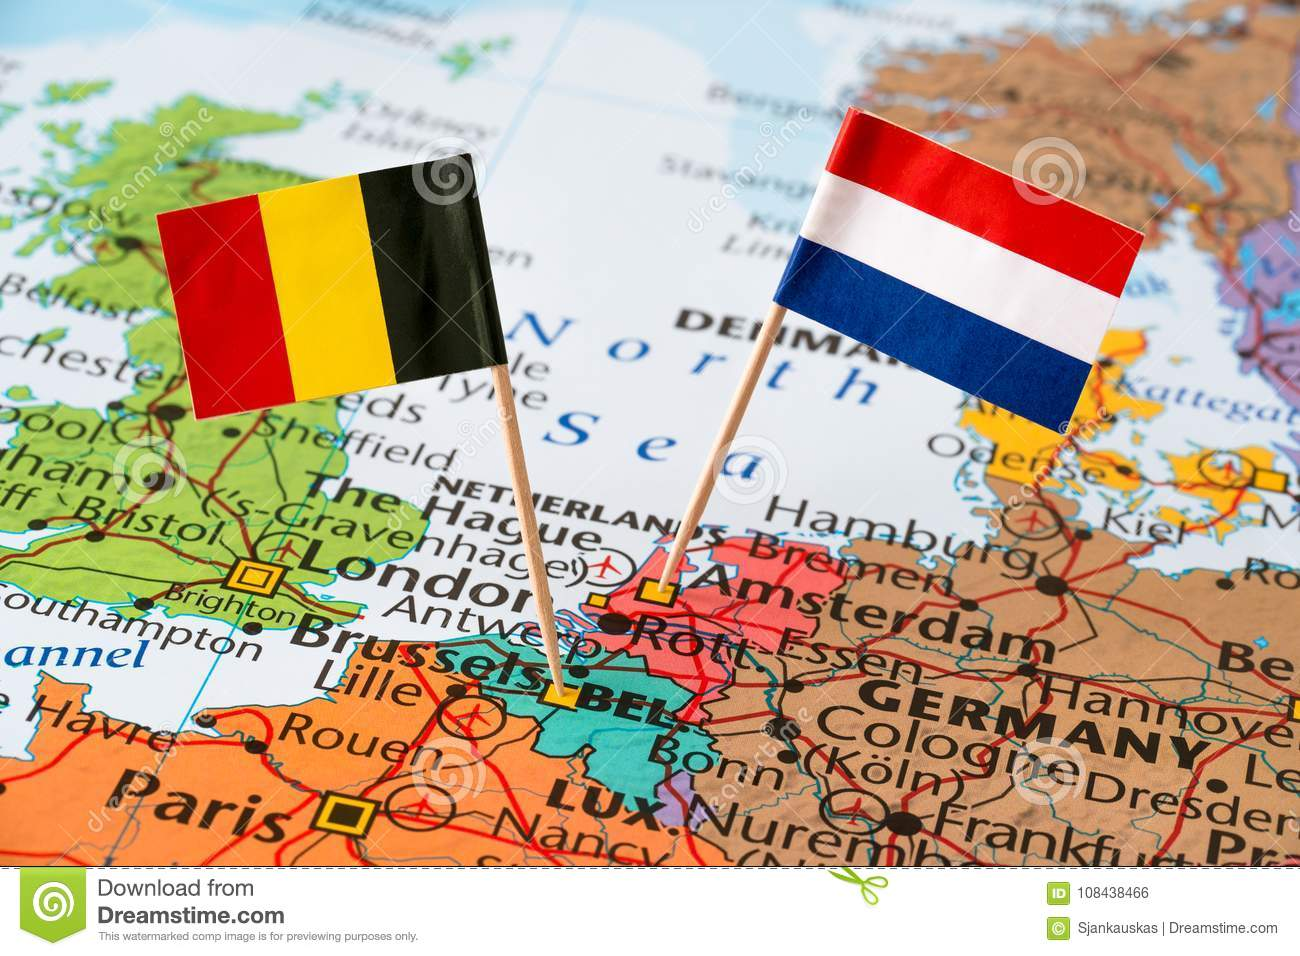 Belgium and Netherlands flags on map